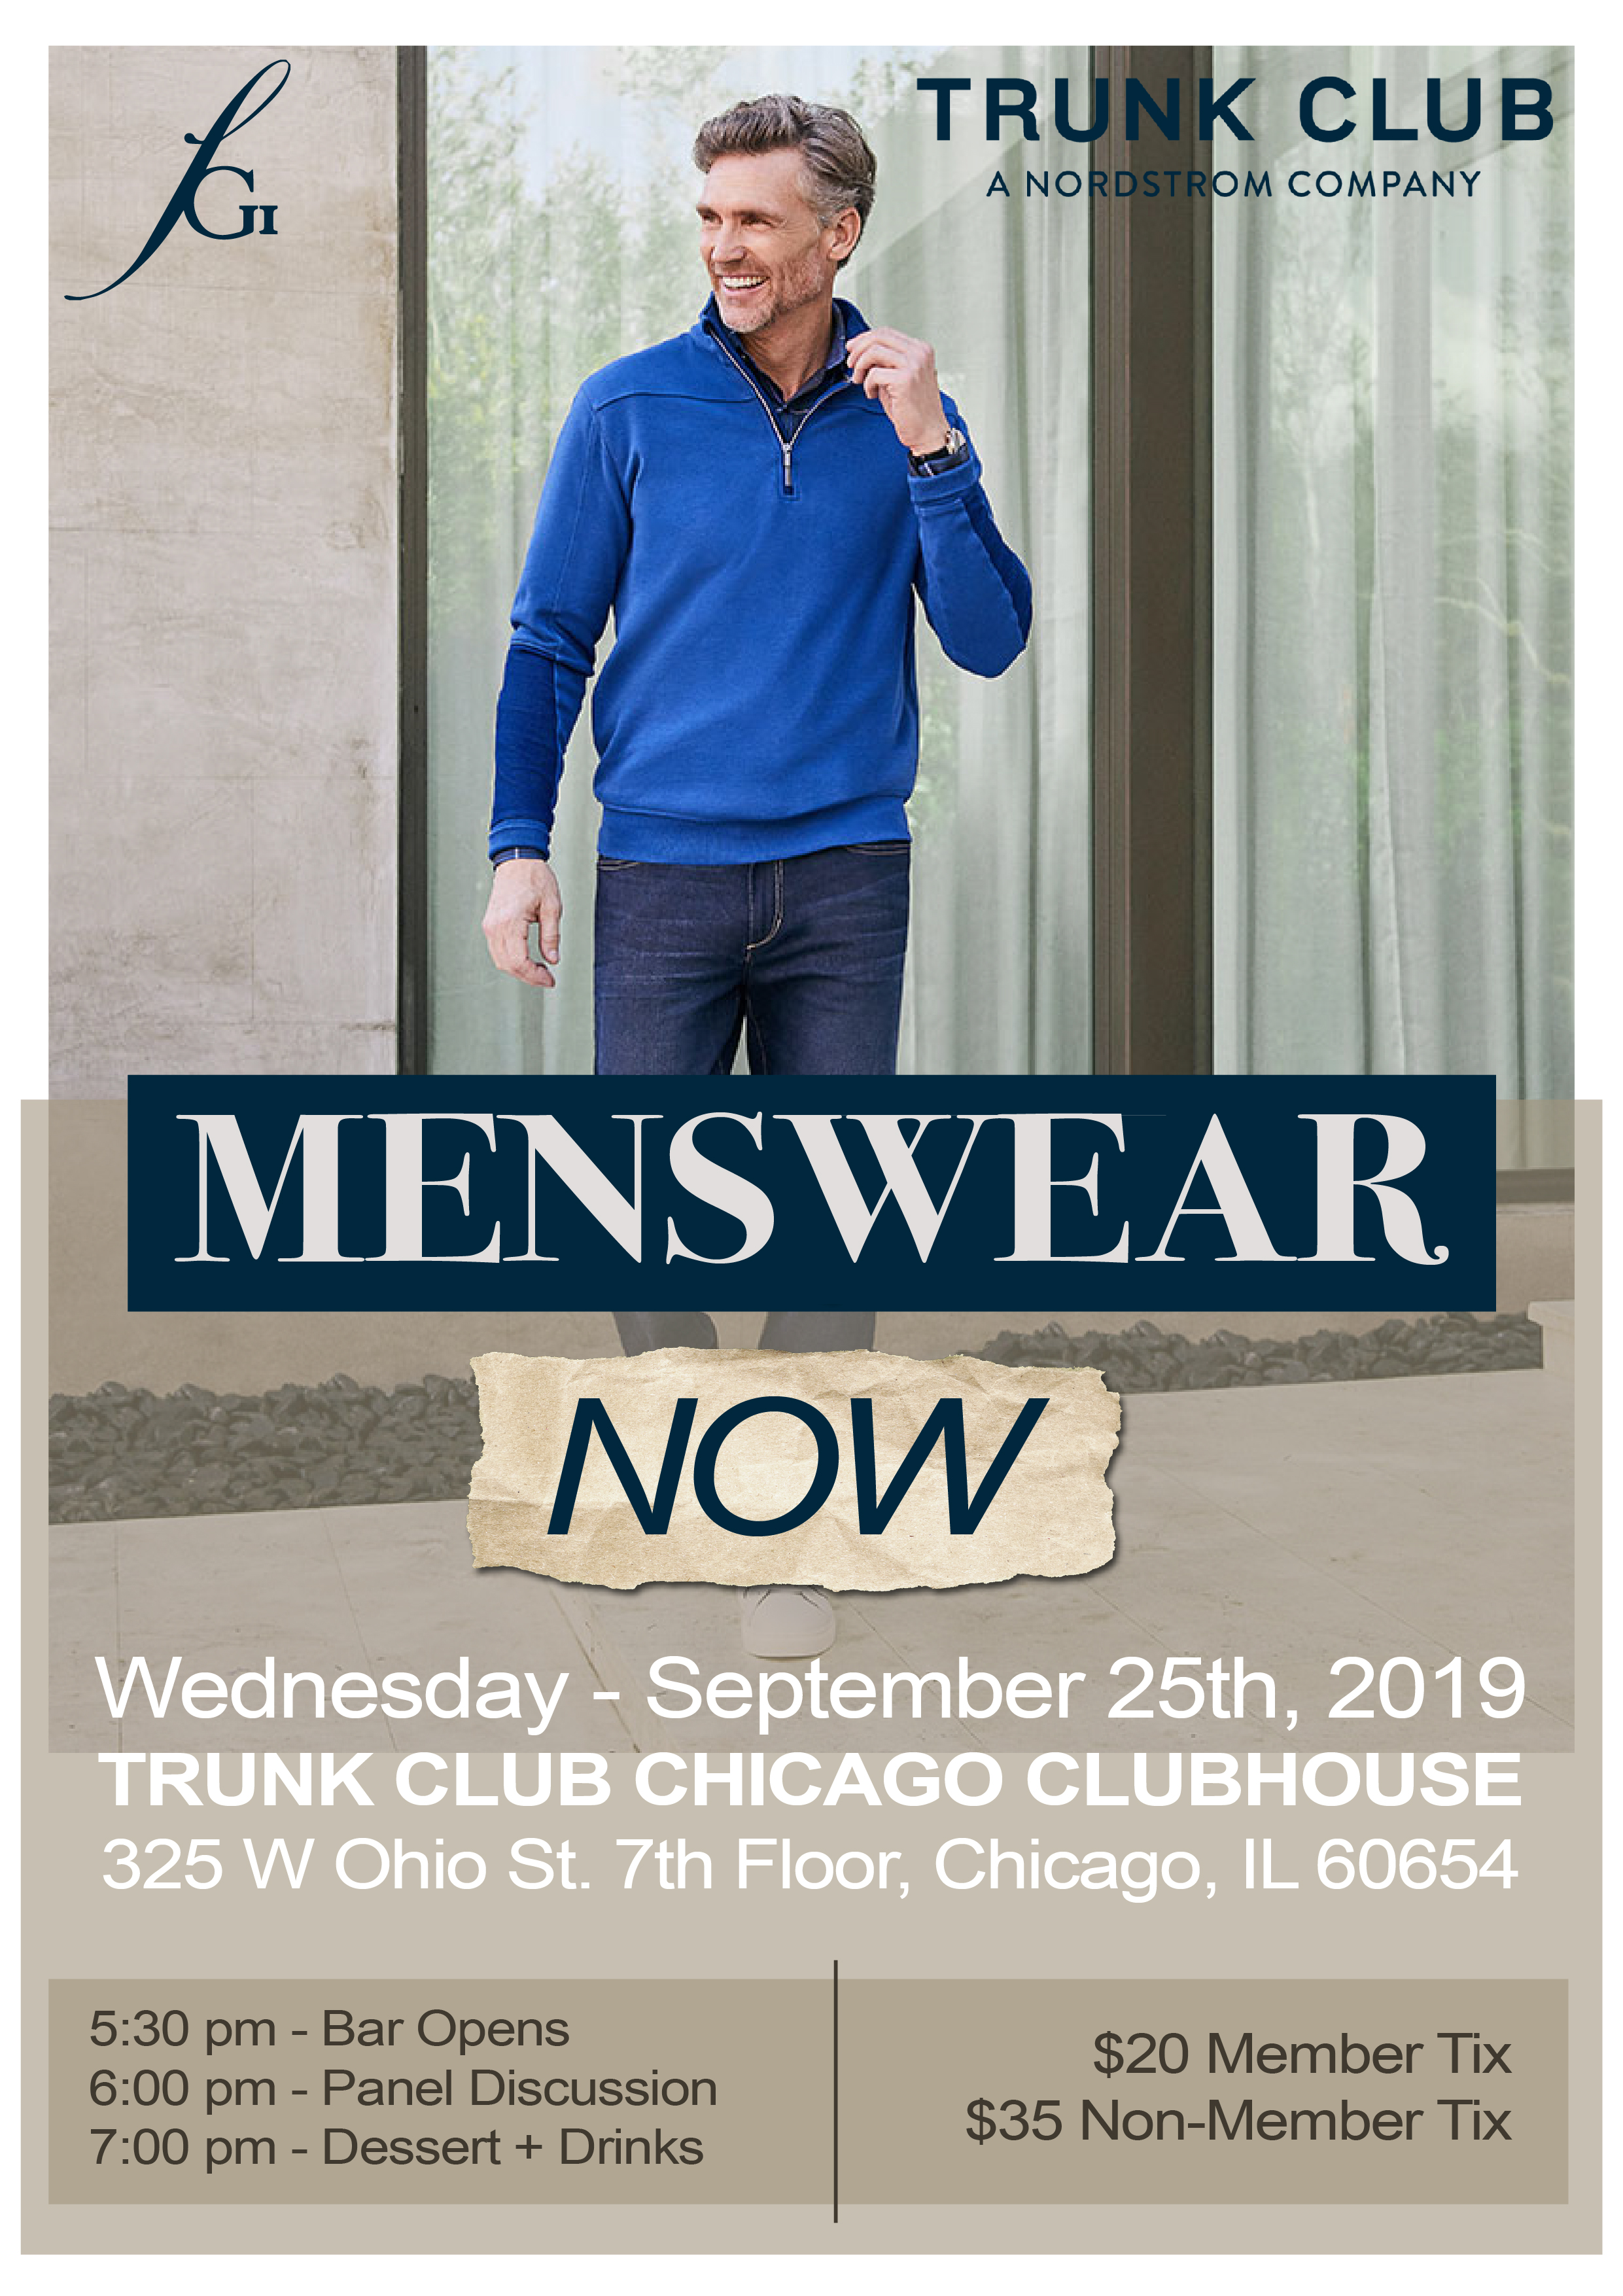 fgi chicago event digital menswear fashion trunk club networking style fun